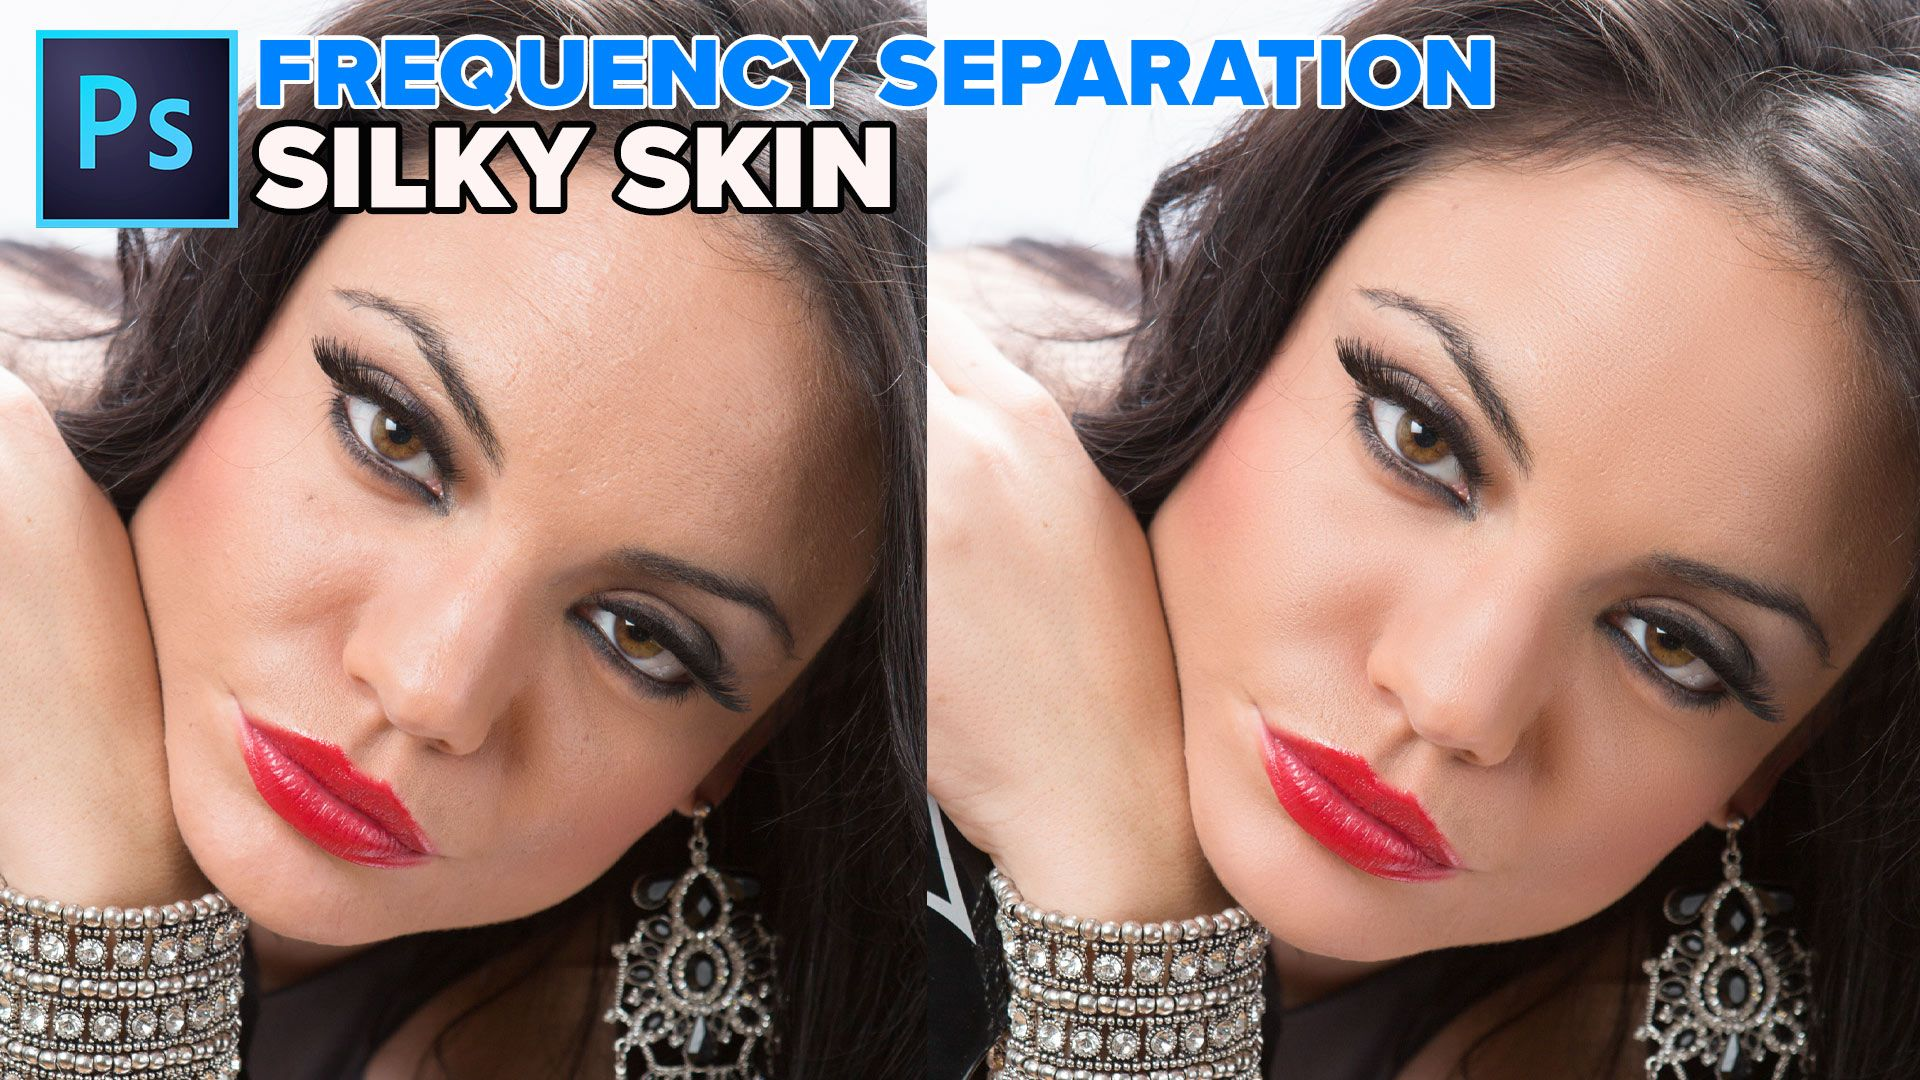 Frequency separation silky smooth skin in